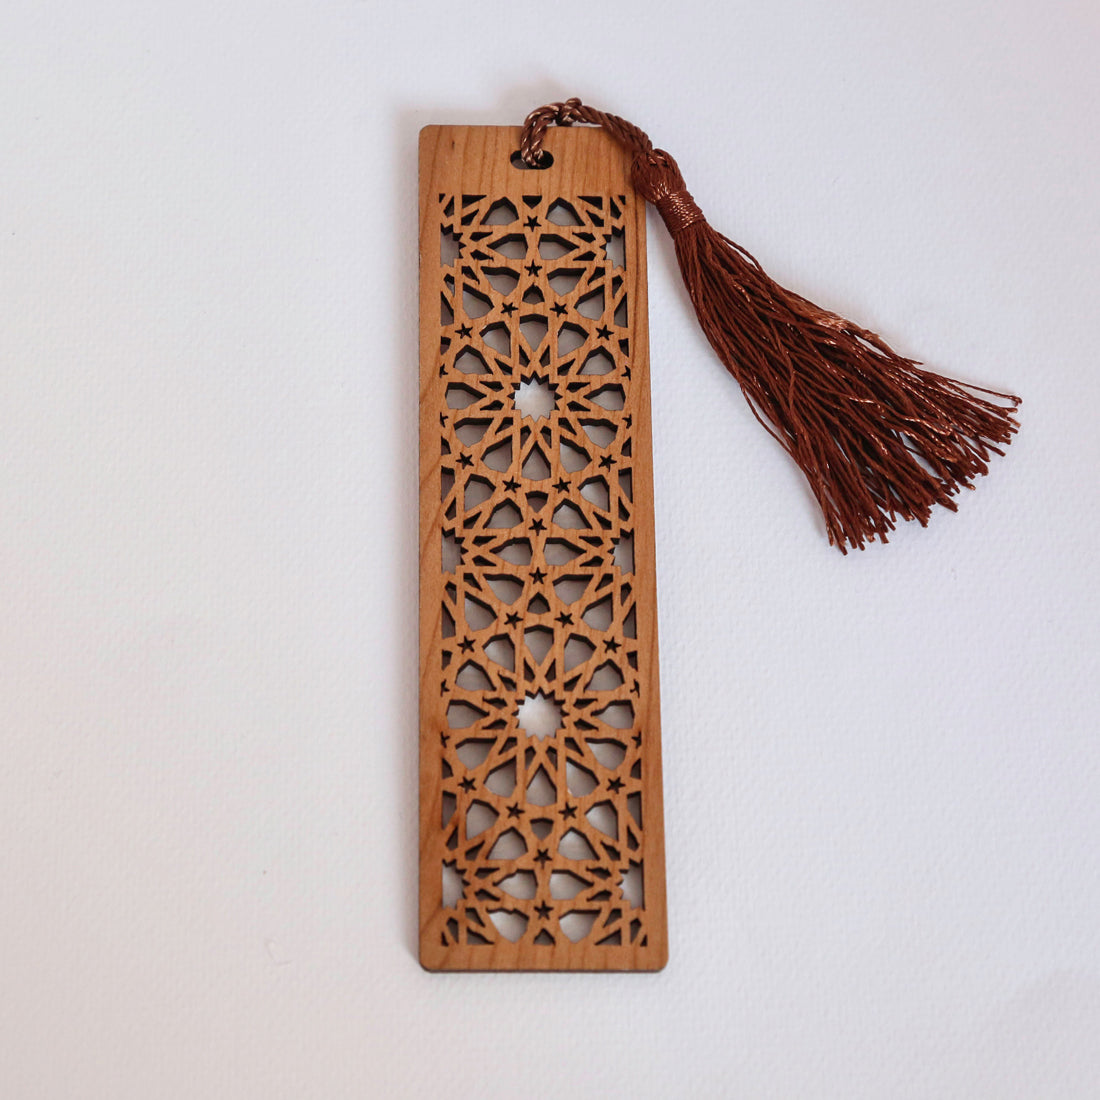 Arabisc Luxury Wooden Bookmark